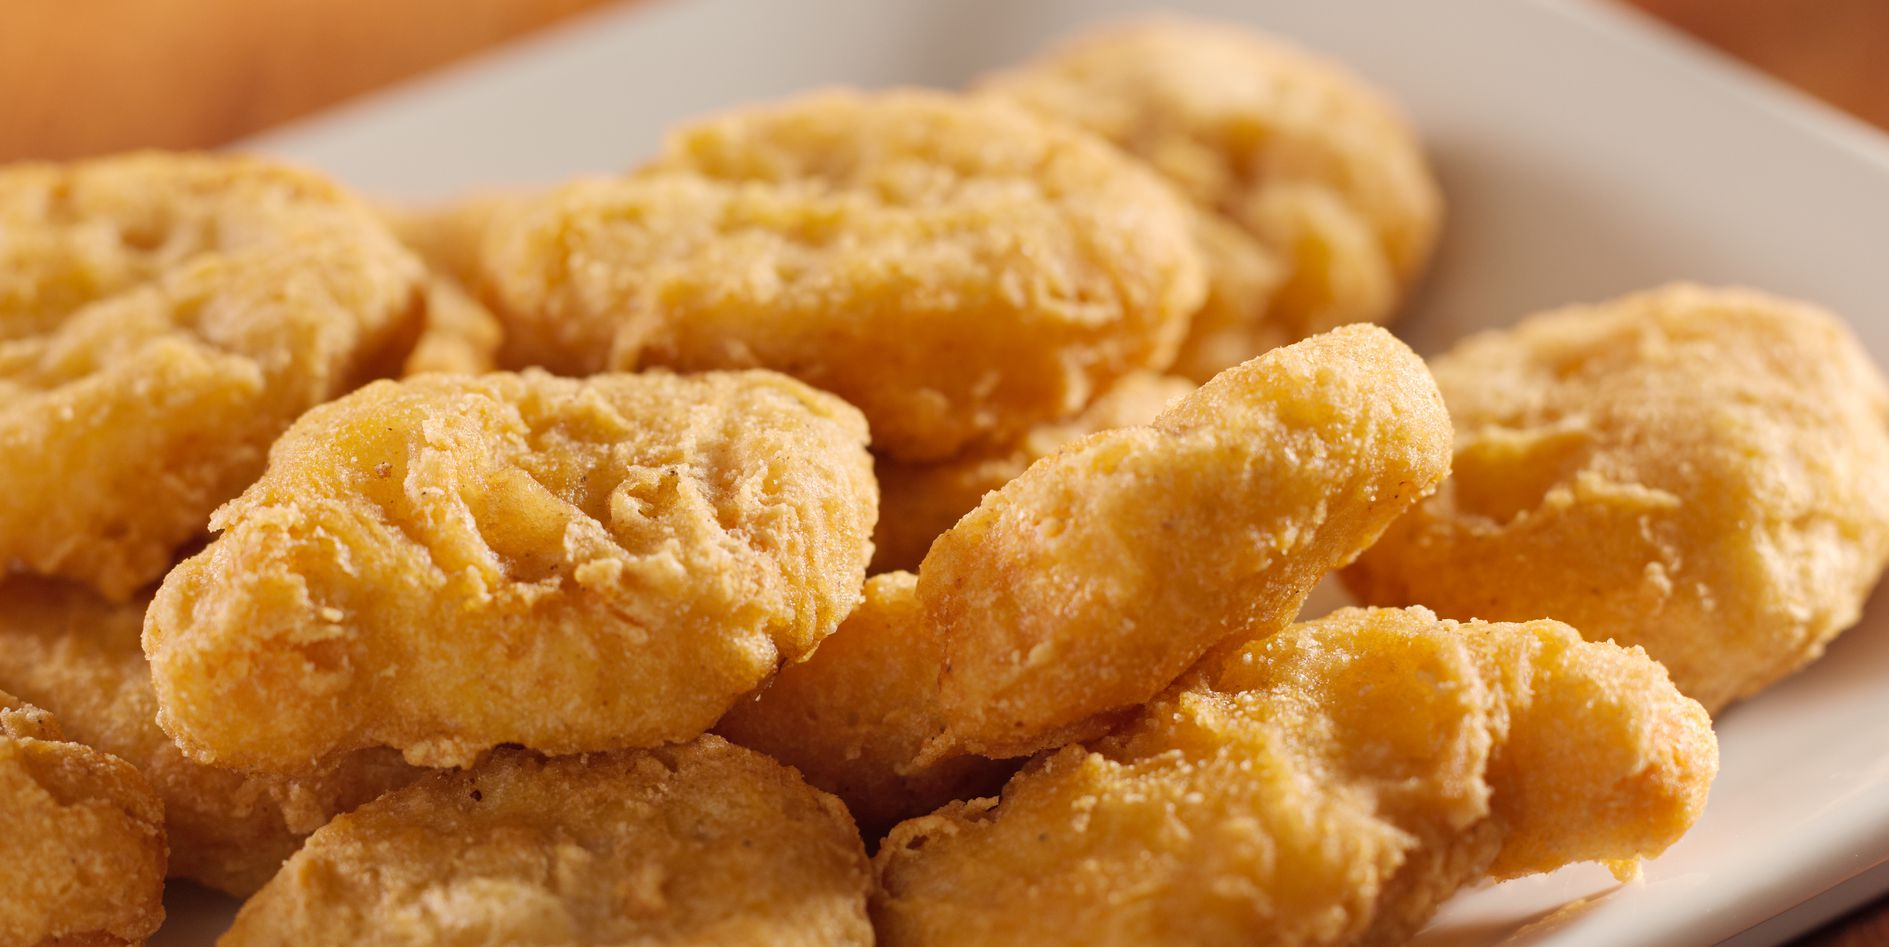 36,000 Pounds Of Chicken Nuggets Might Be Contaminated with Rubber, So Stop Eating Them Immediately